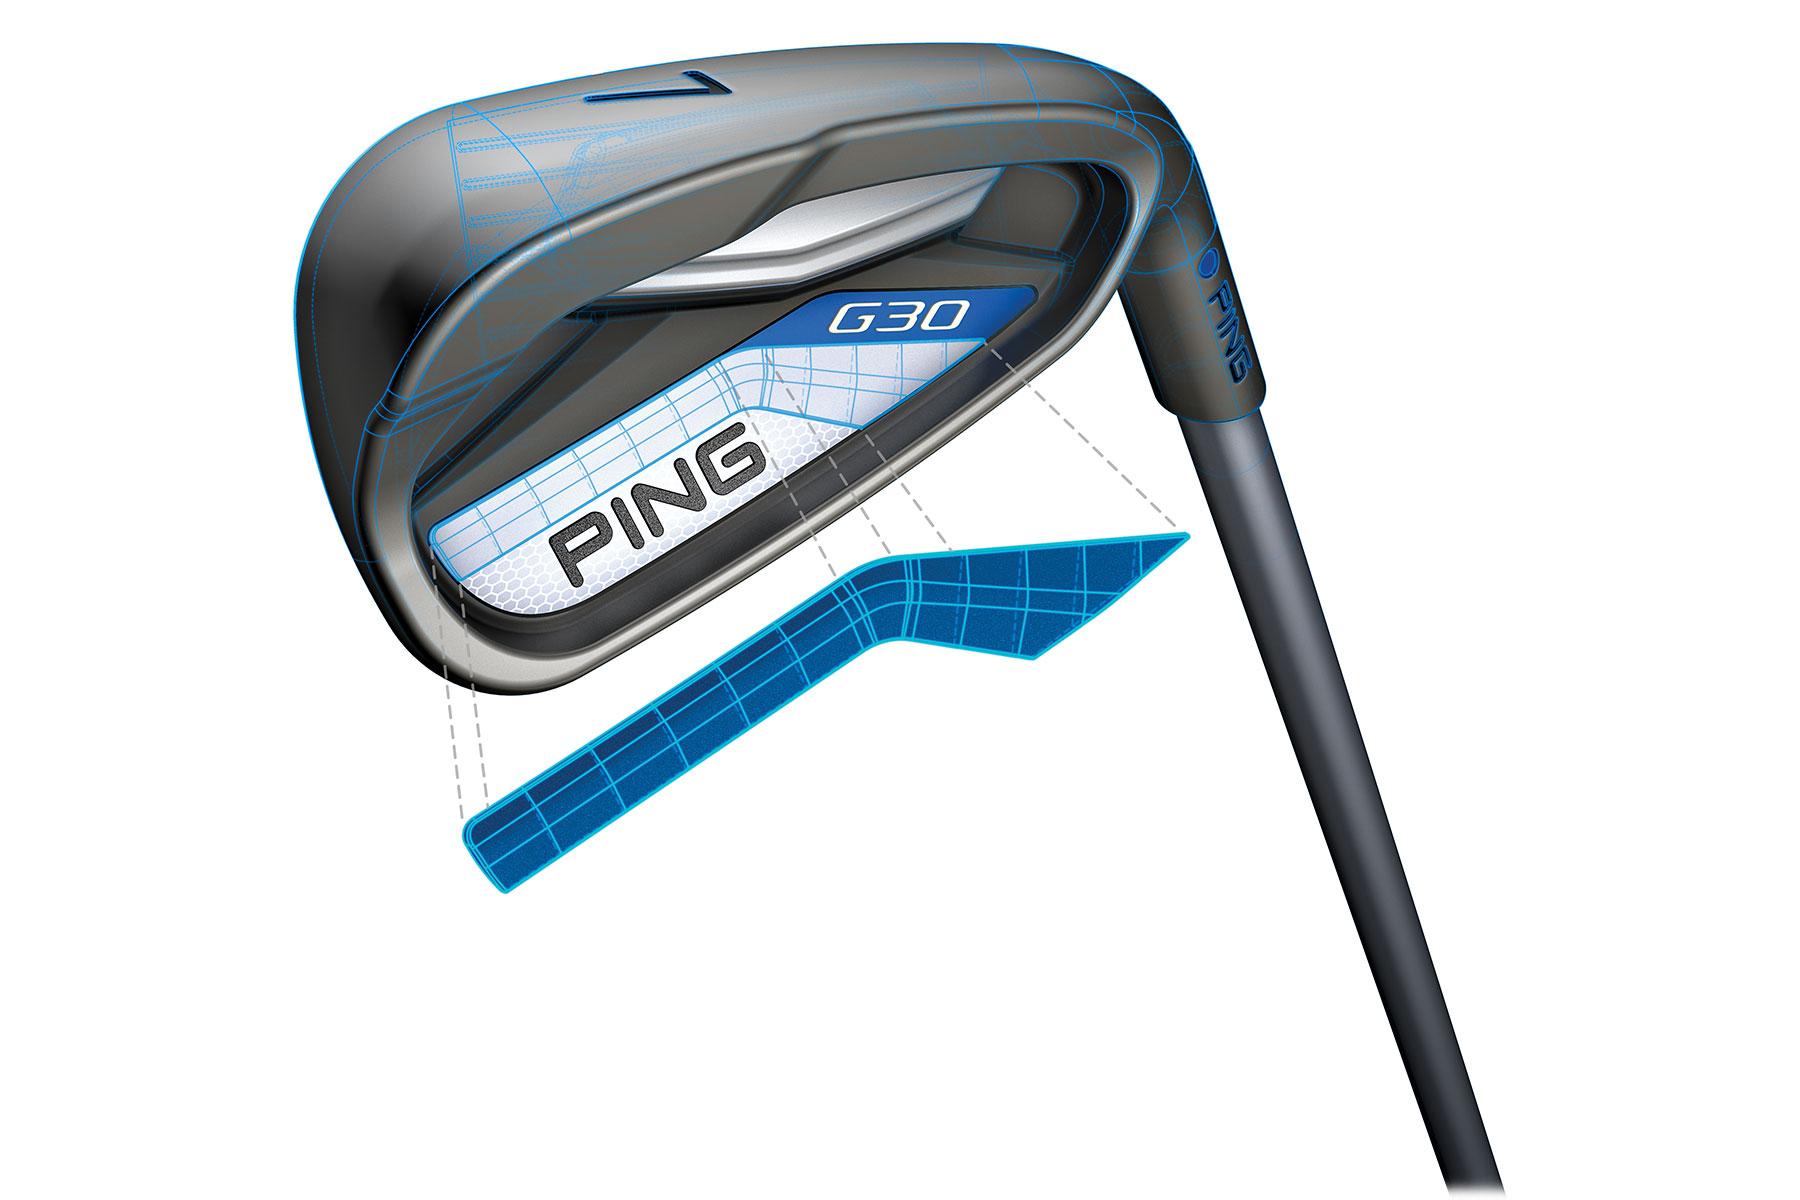 ping g30 irons steel 5 sw from american golf. Black Bedroom Furniture Sets. Home Design Ideas